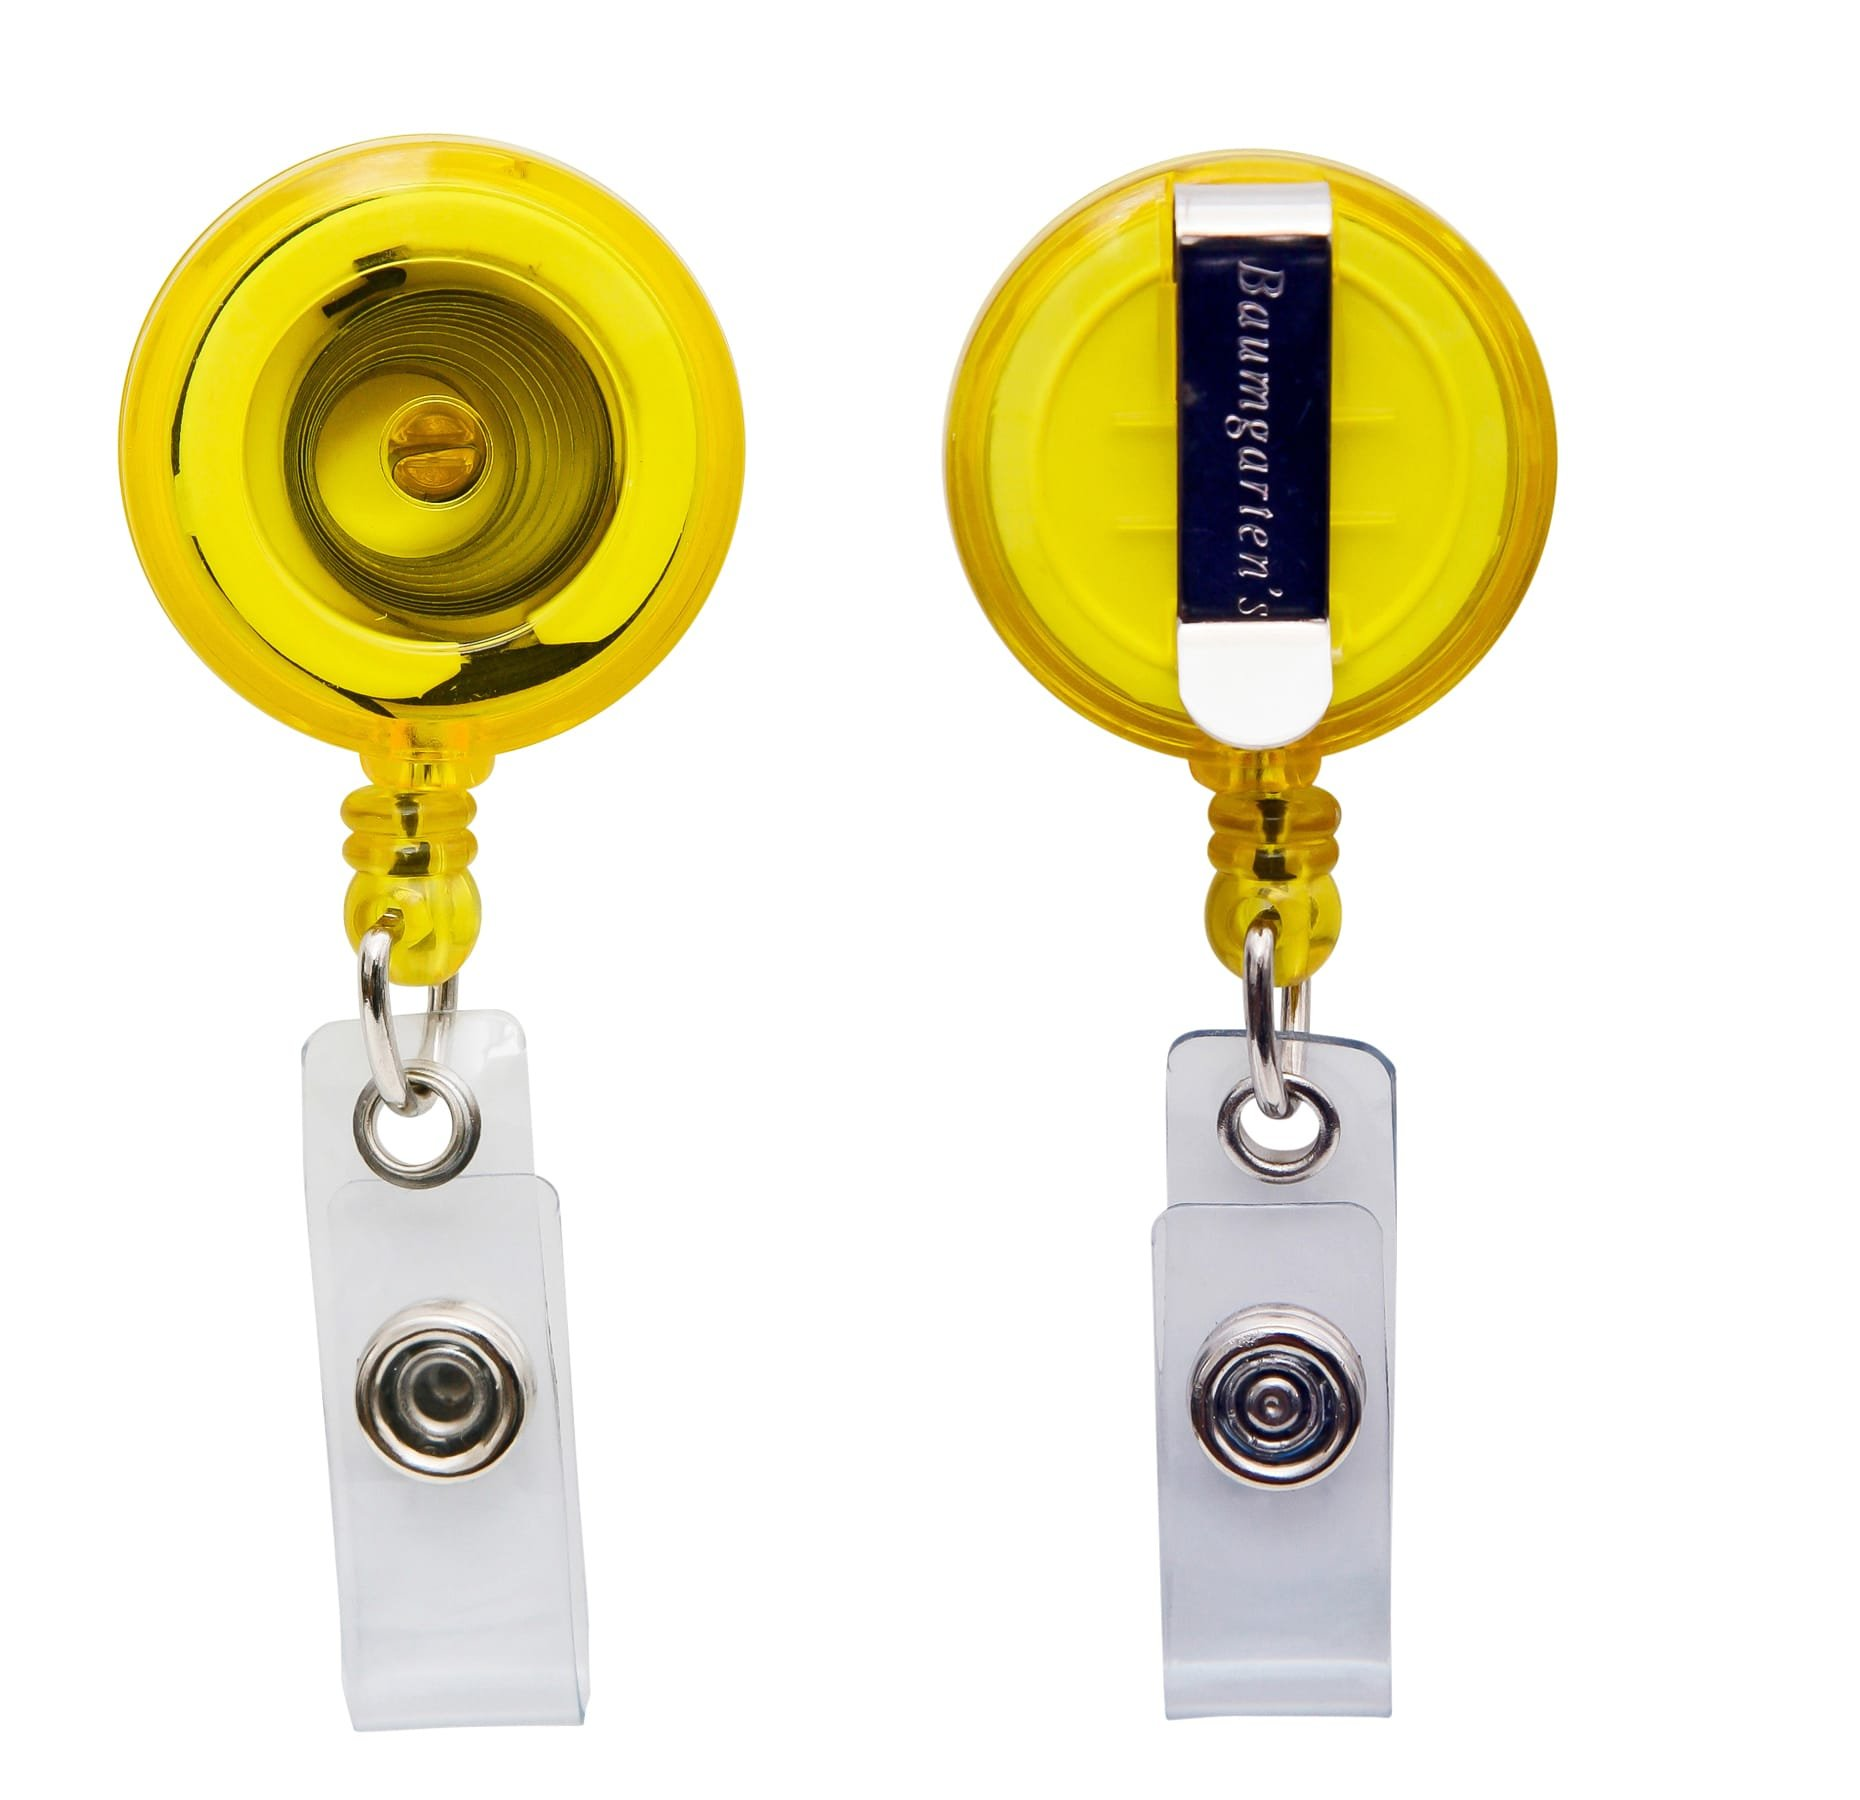 SICURIX Standard ID Badge Reel Round Belt Clip Strap 1 Each Yellow (Pack of 600) (68857)